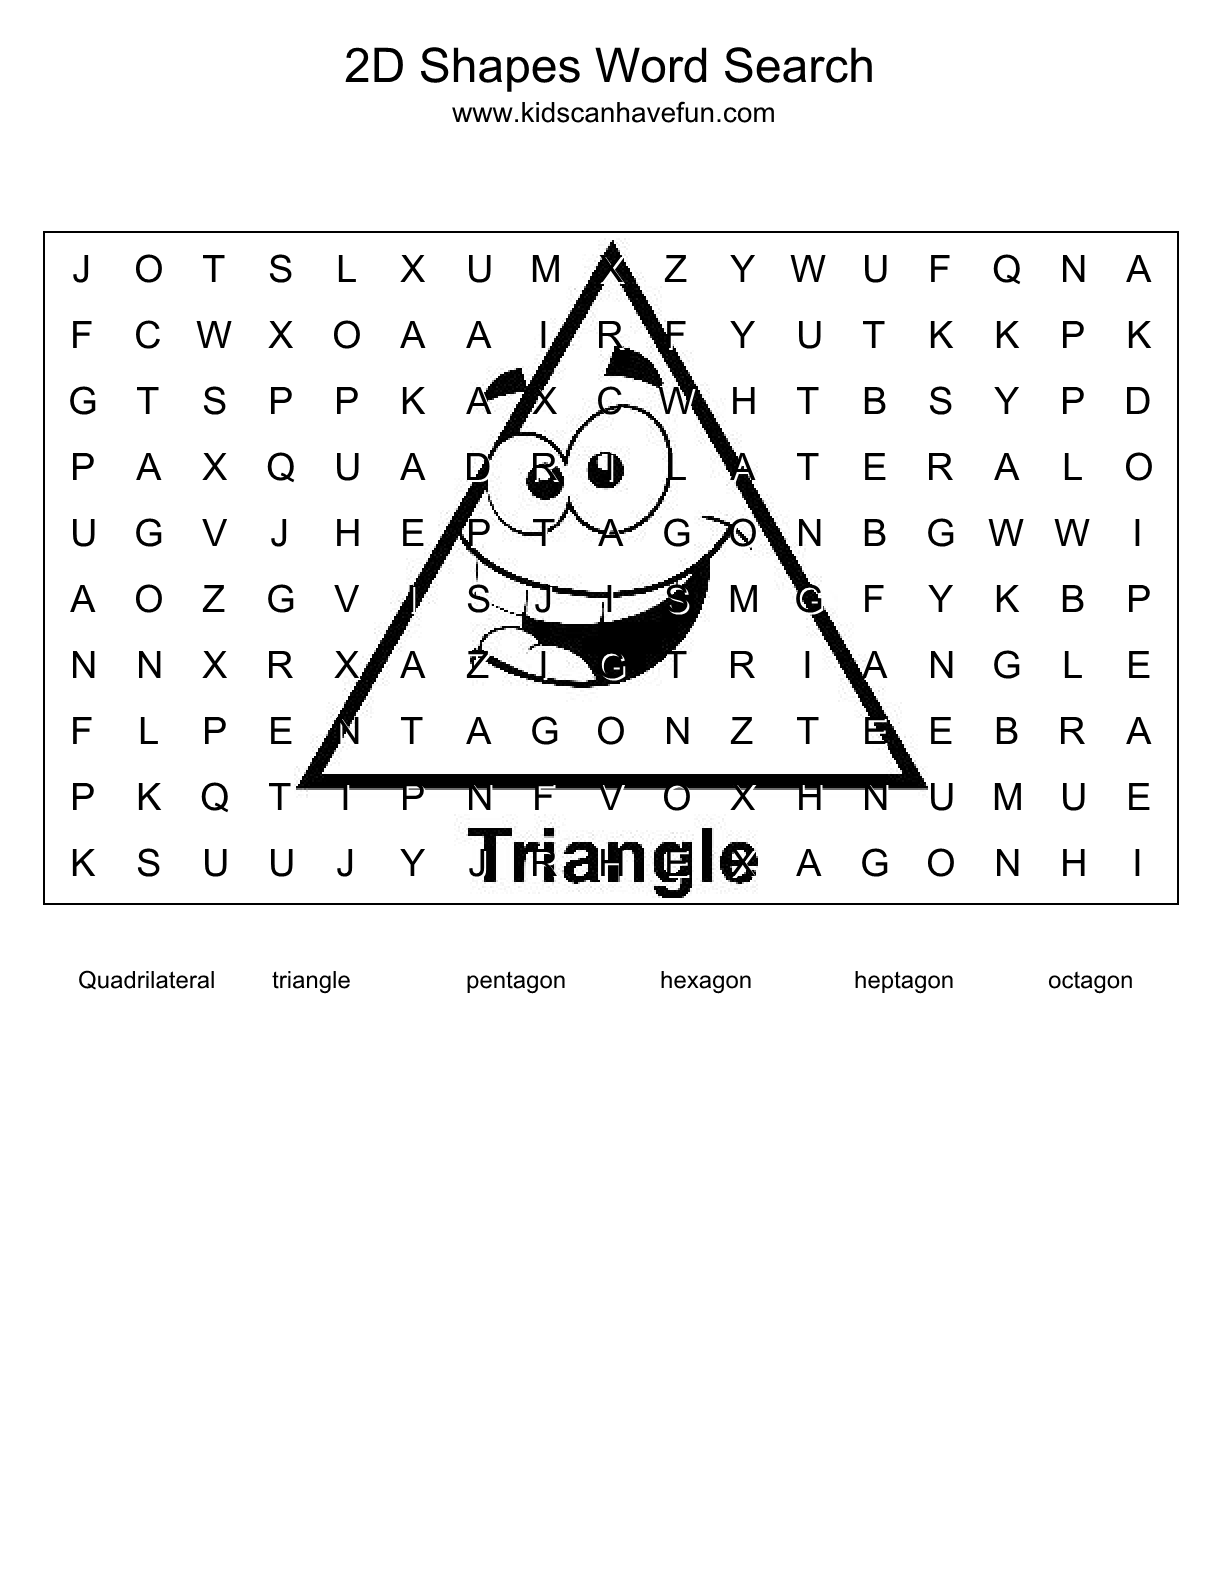 2d Shapes Word Search Puzzle Dscanhavefun